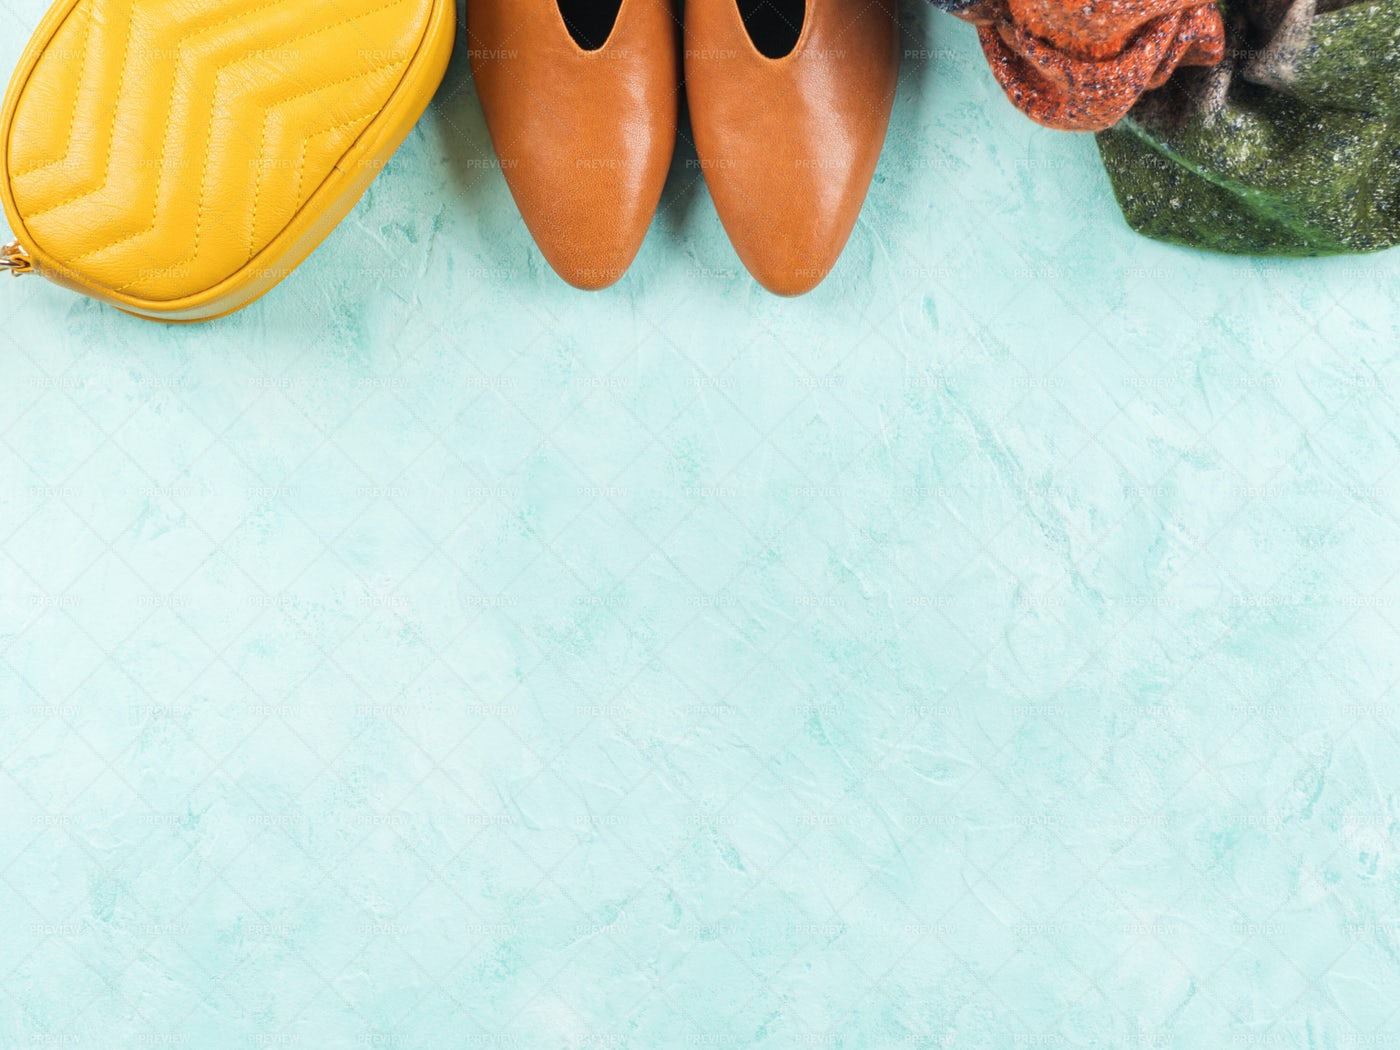 Fall Outfit Turquoise Background: Stock Photos